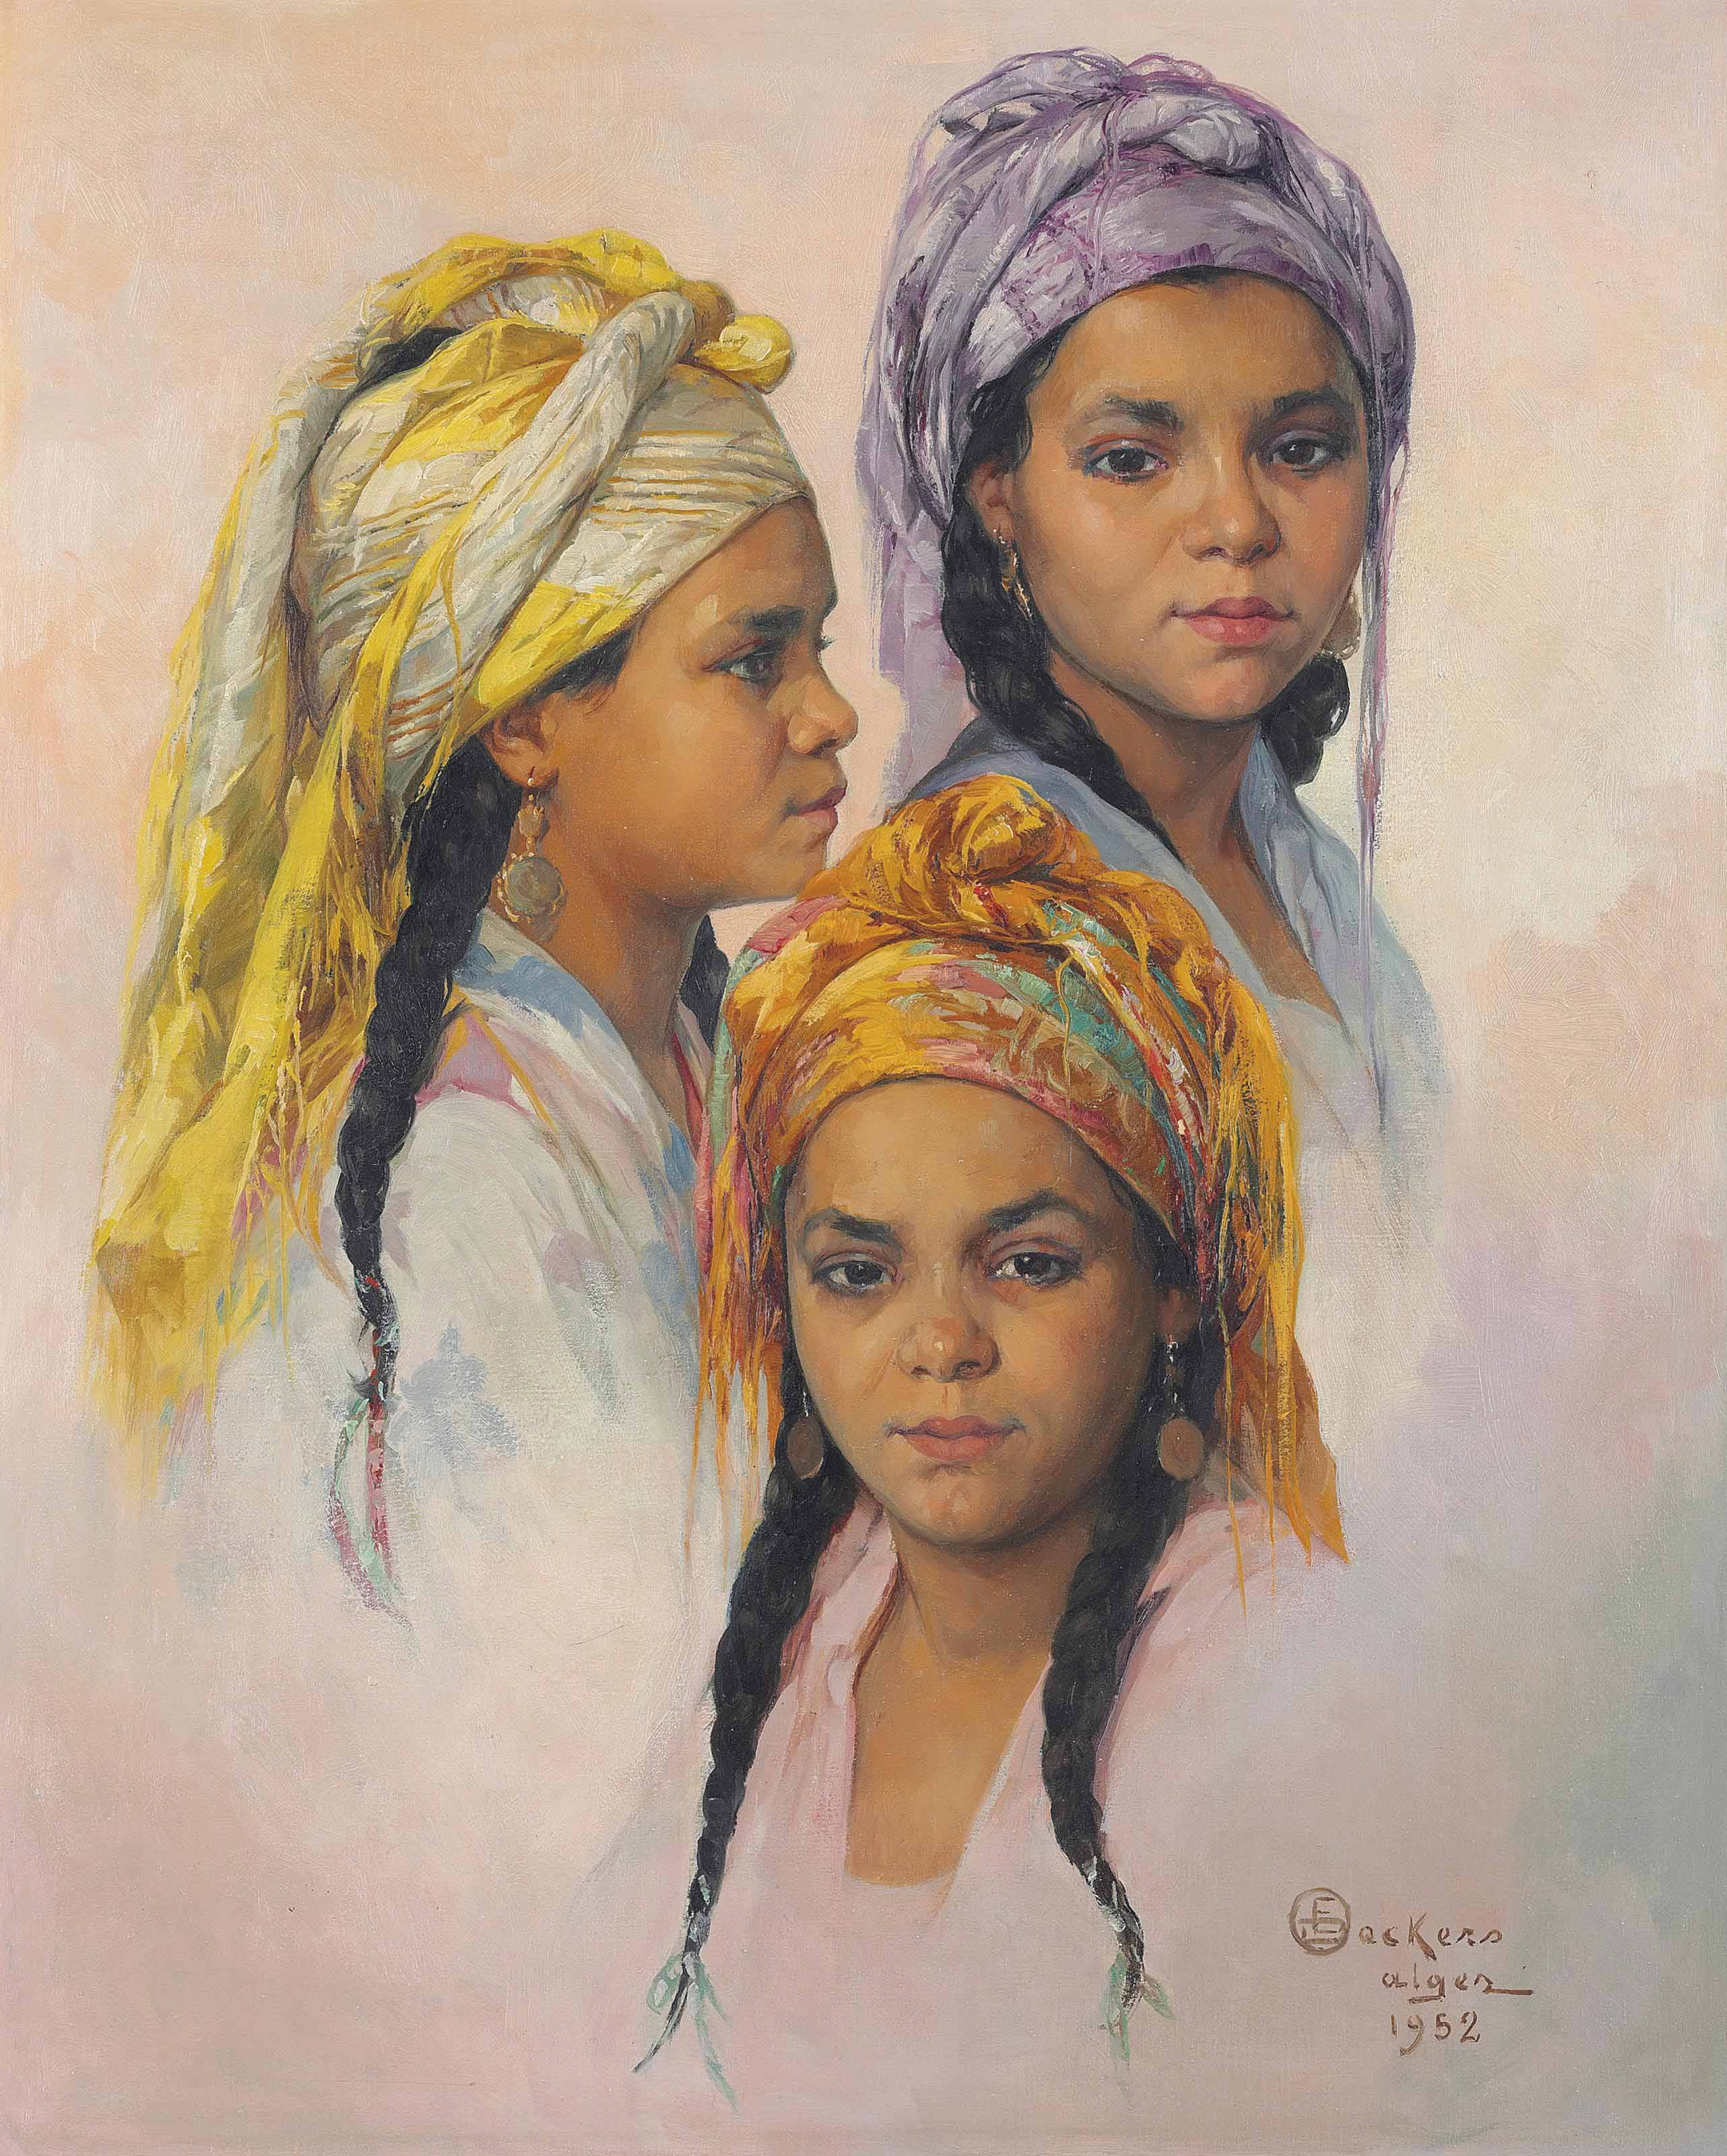 Three studies of the head of an Algerian beauty